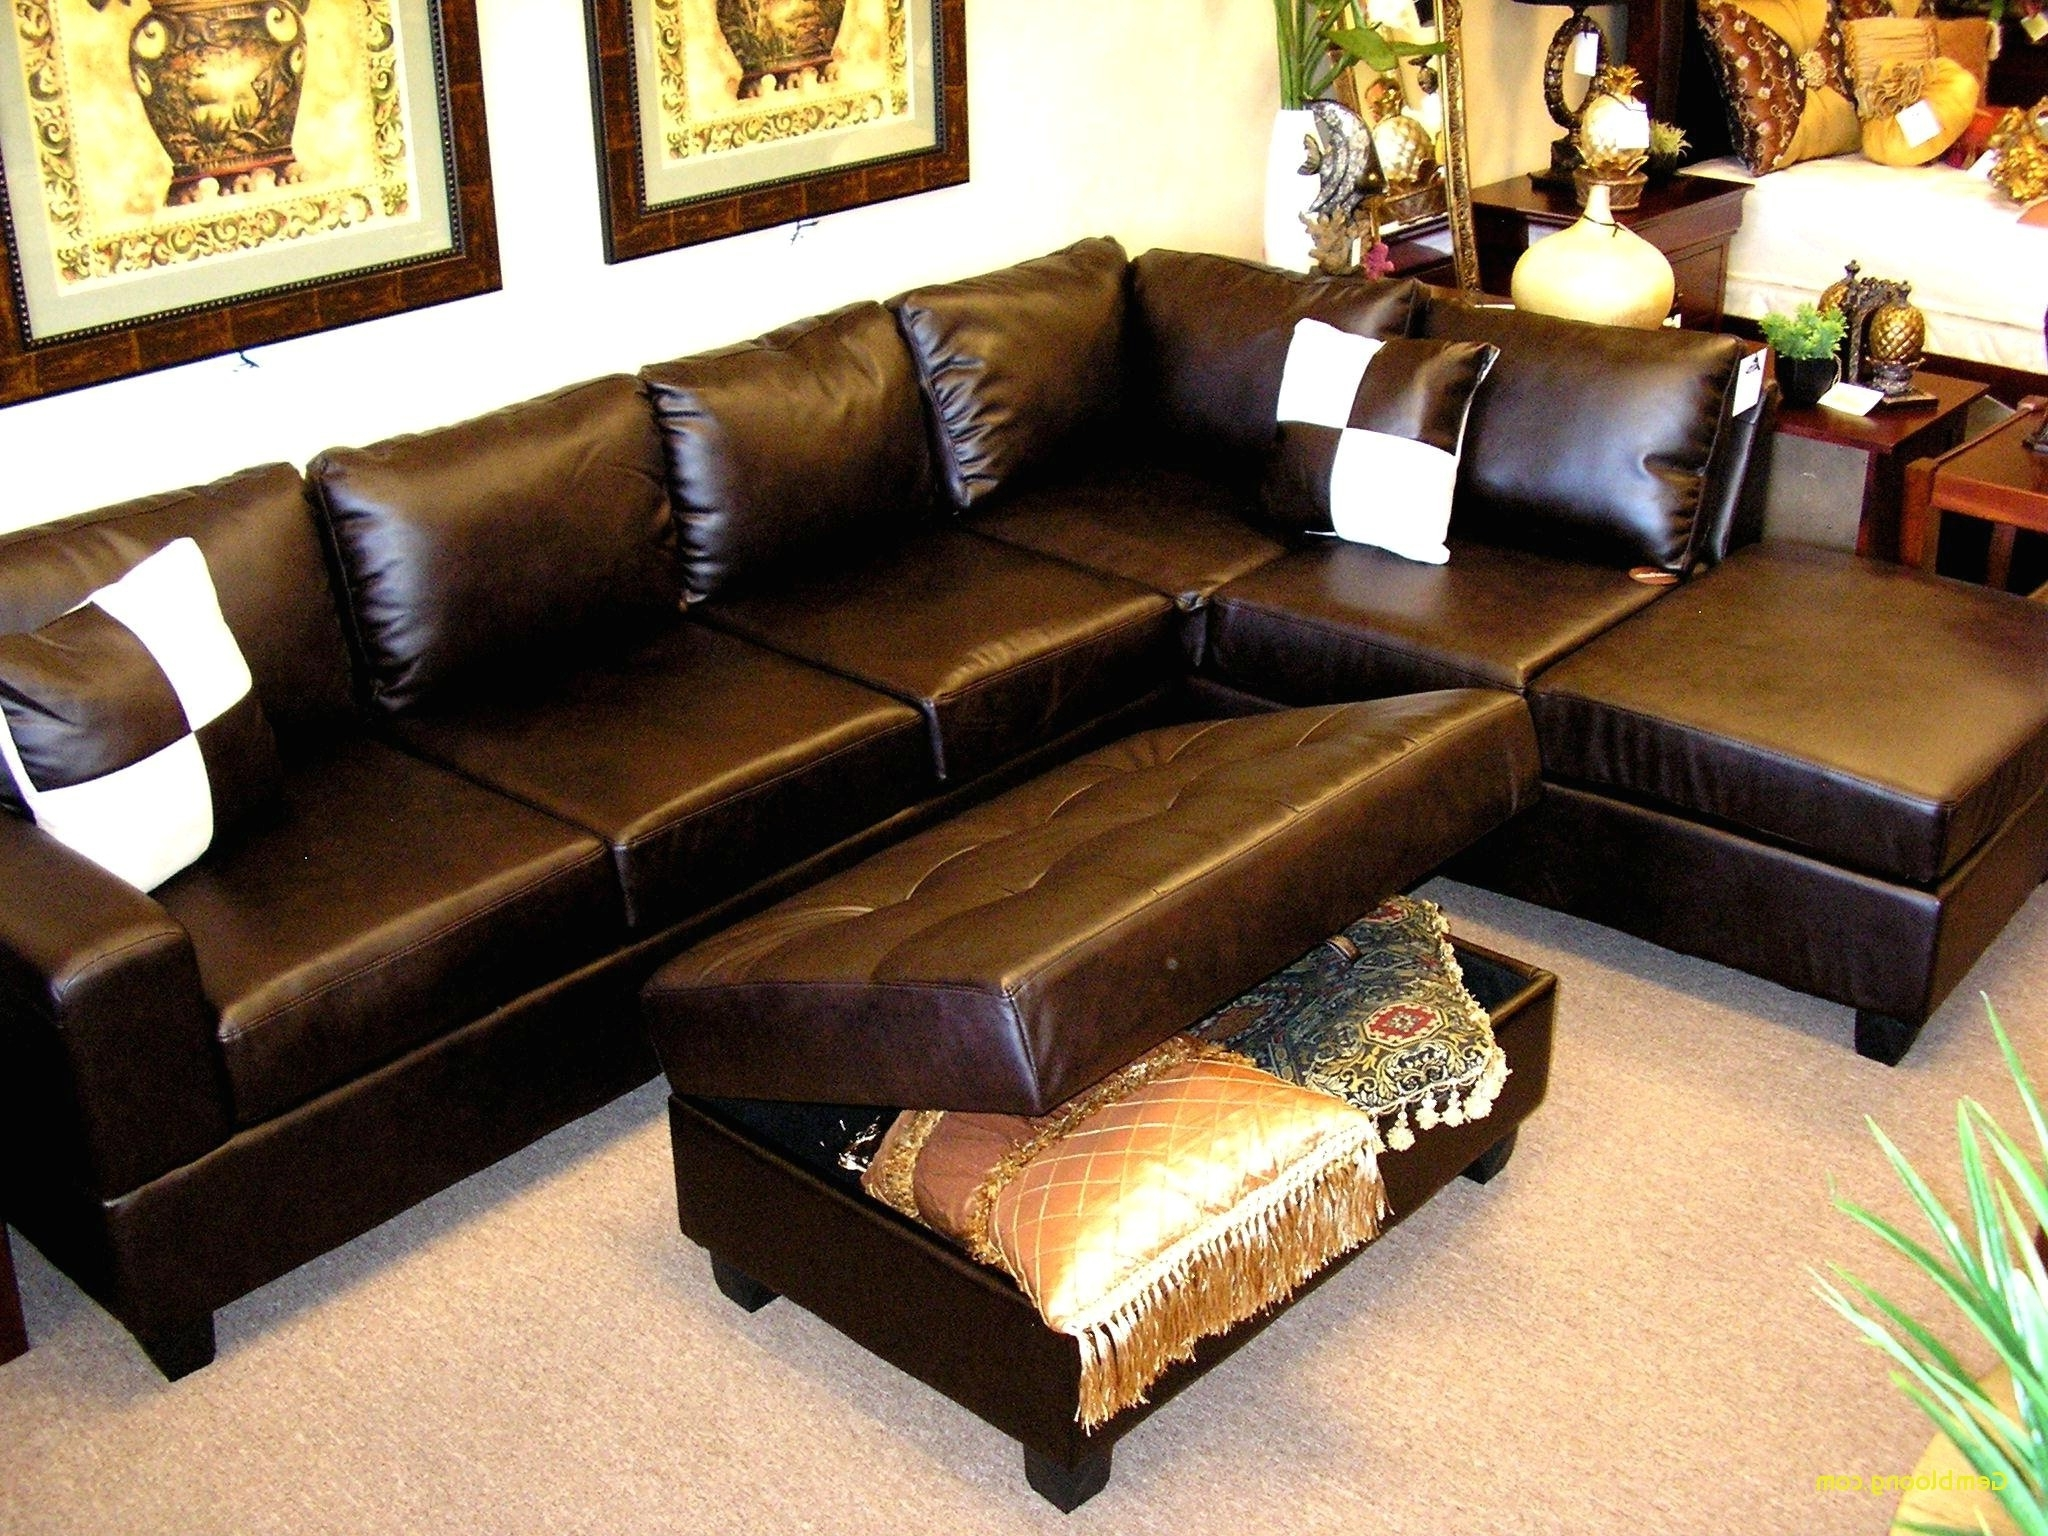 Preferred Sectional Sofas With Chaise Lounge And Ottoman Pertaining To Chaise Lounge With Ottoman Luxury Furniture Black Leather Tufted (View 8 of 15)